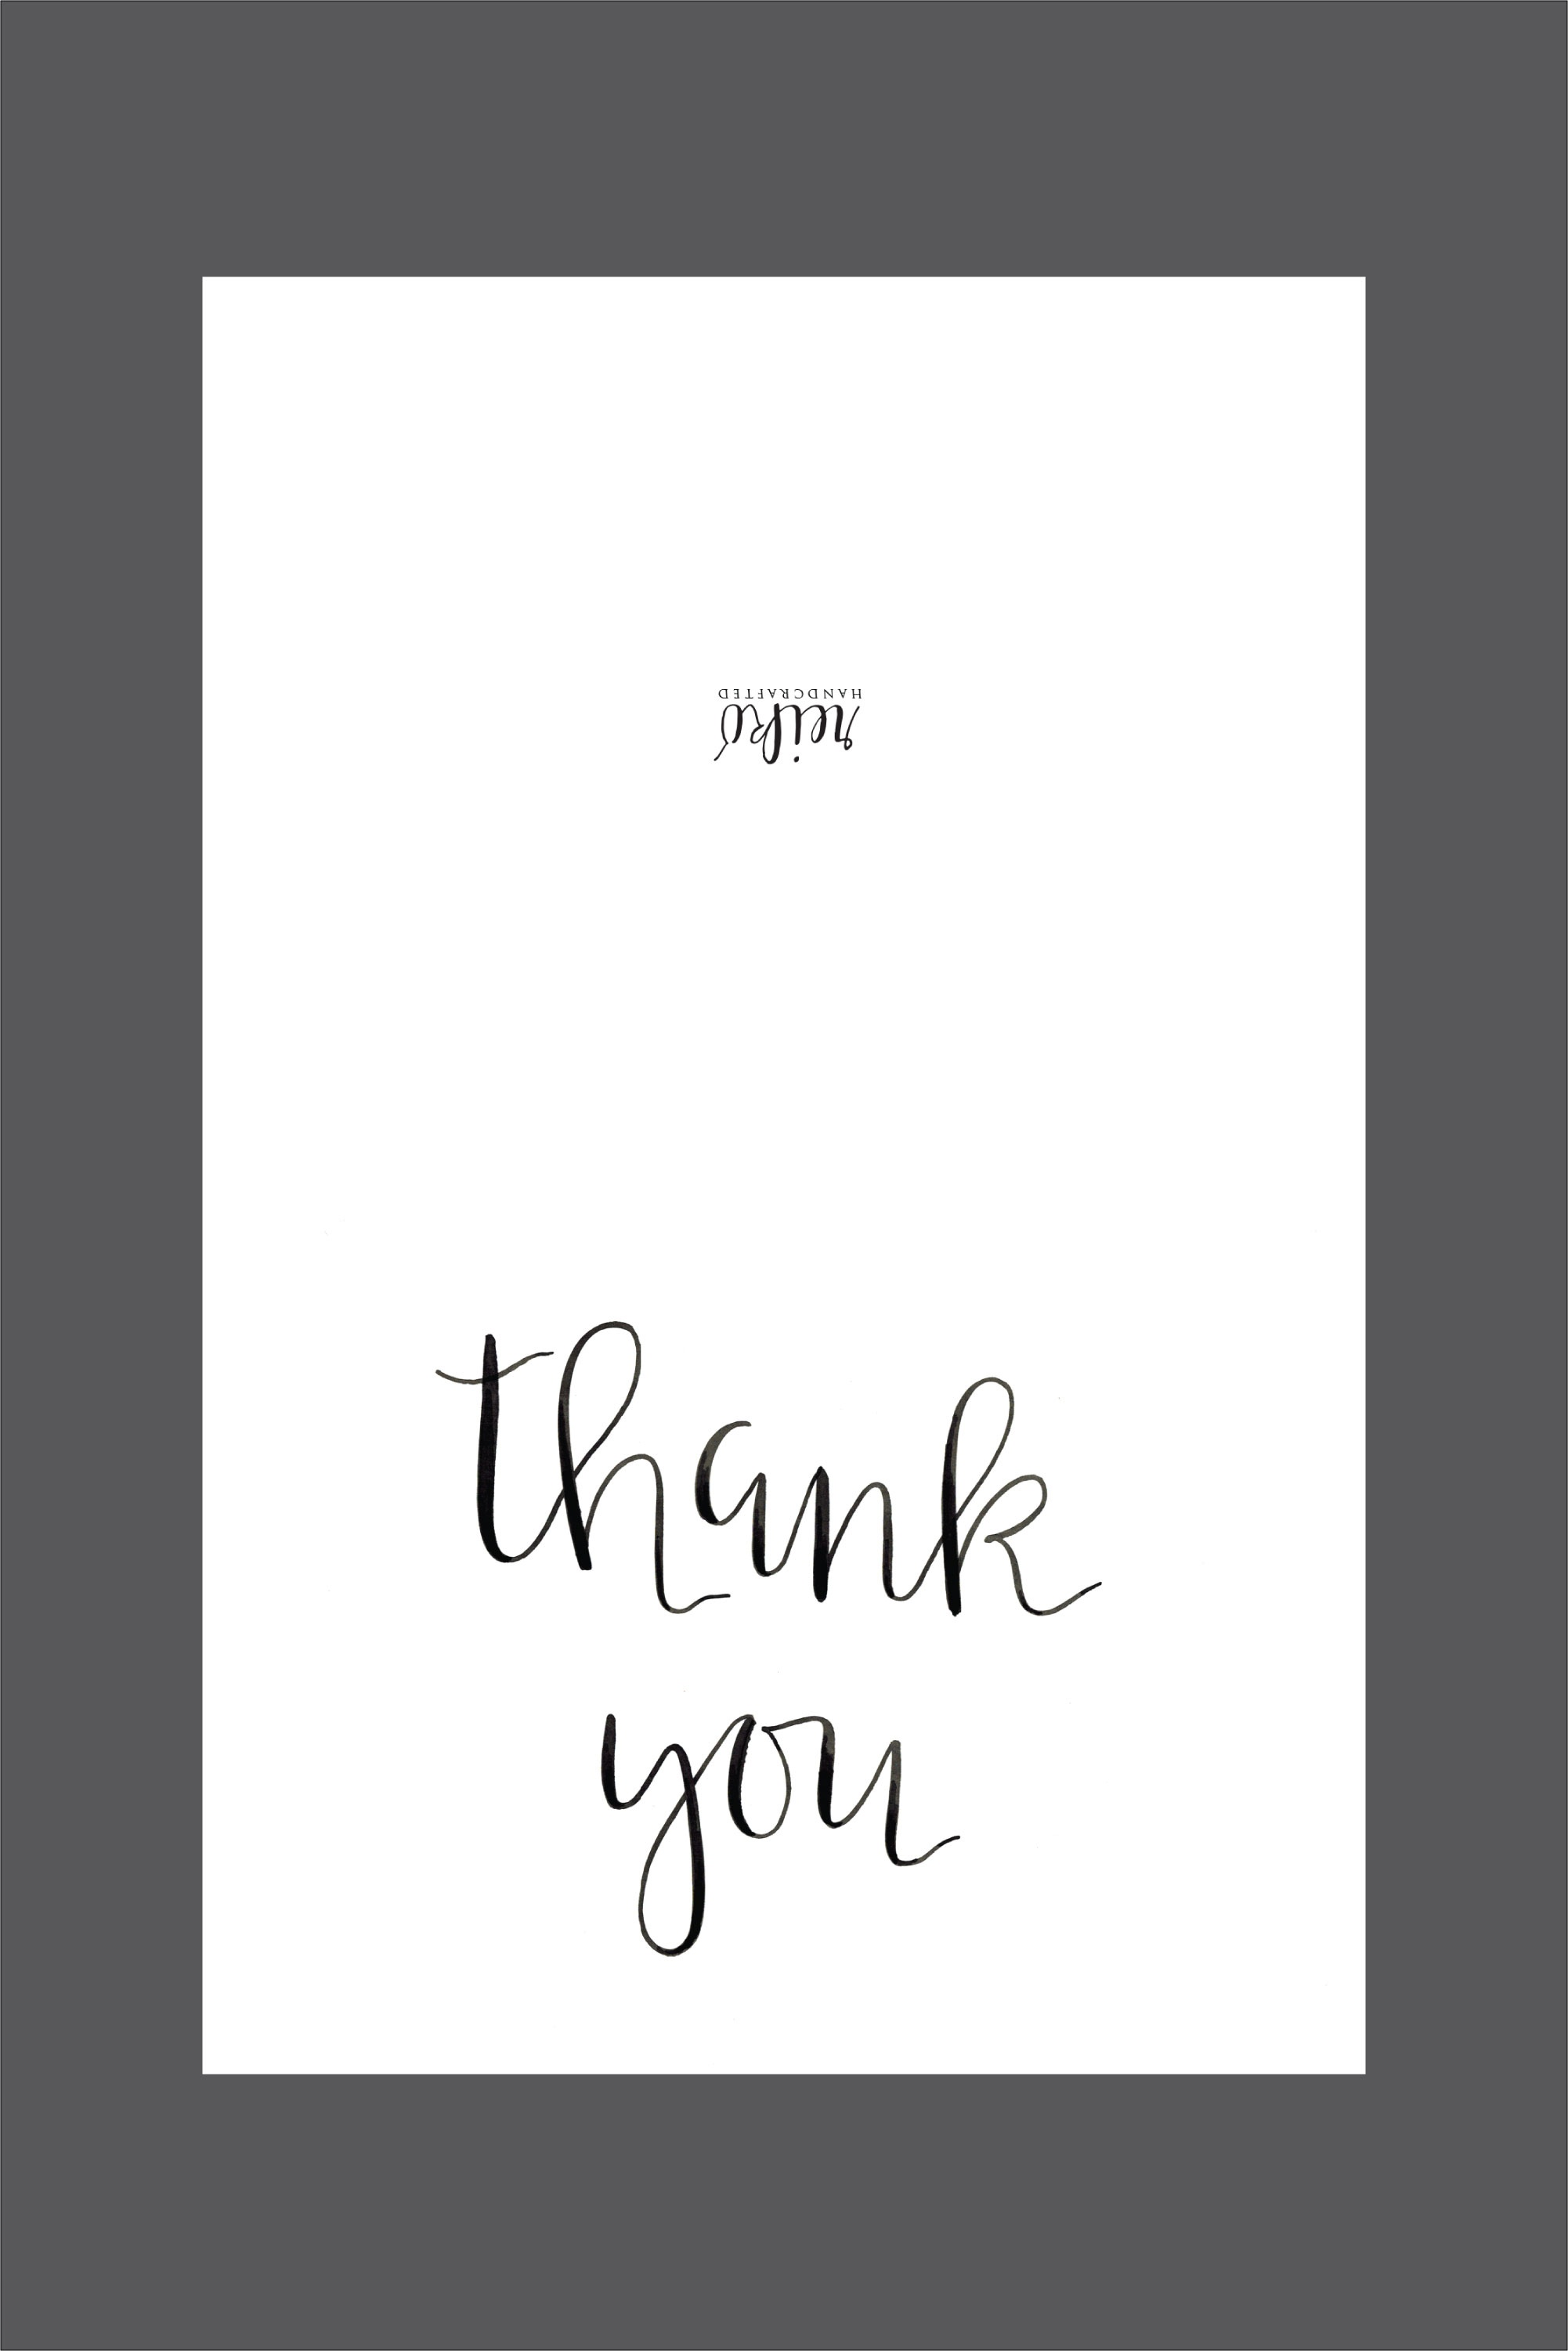 Custom, Specialty Sugar Cookies And Pastries :: Hot Hands Bakery - Thank You Card Free Printable Template